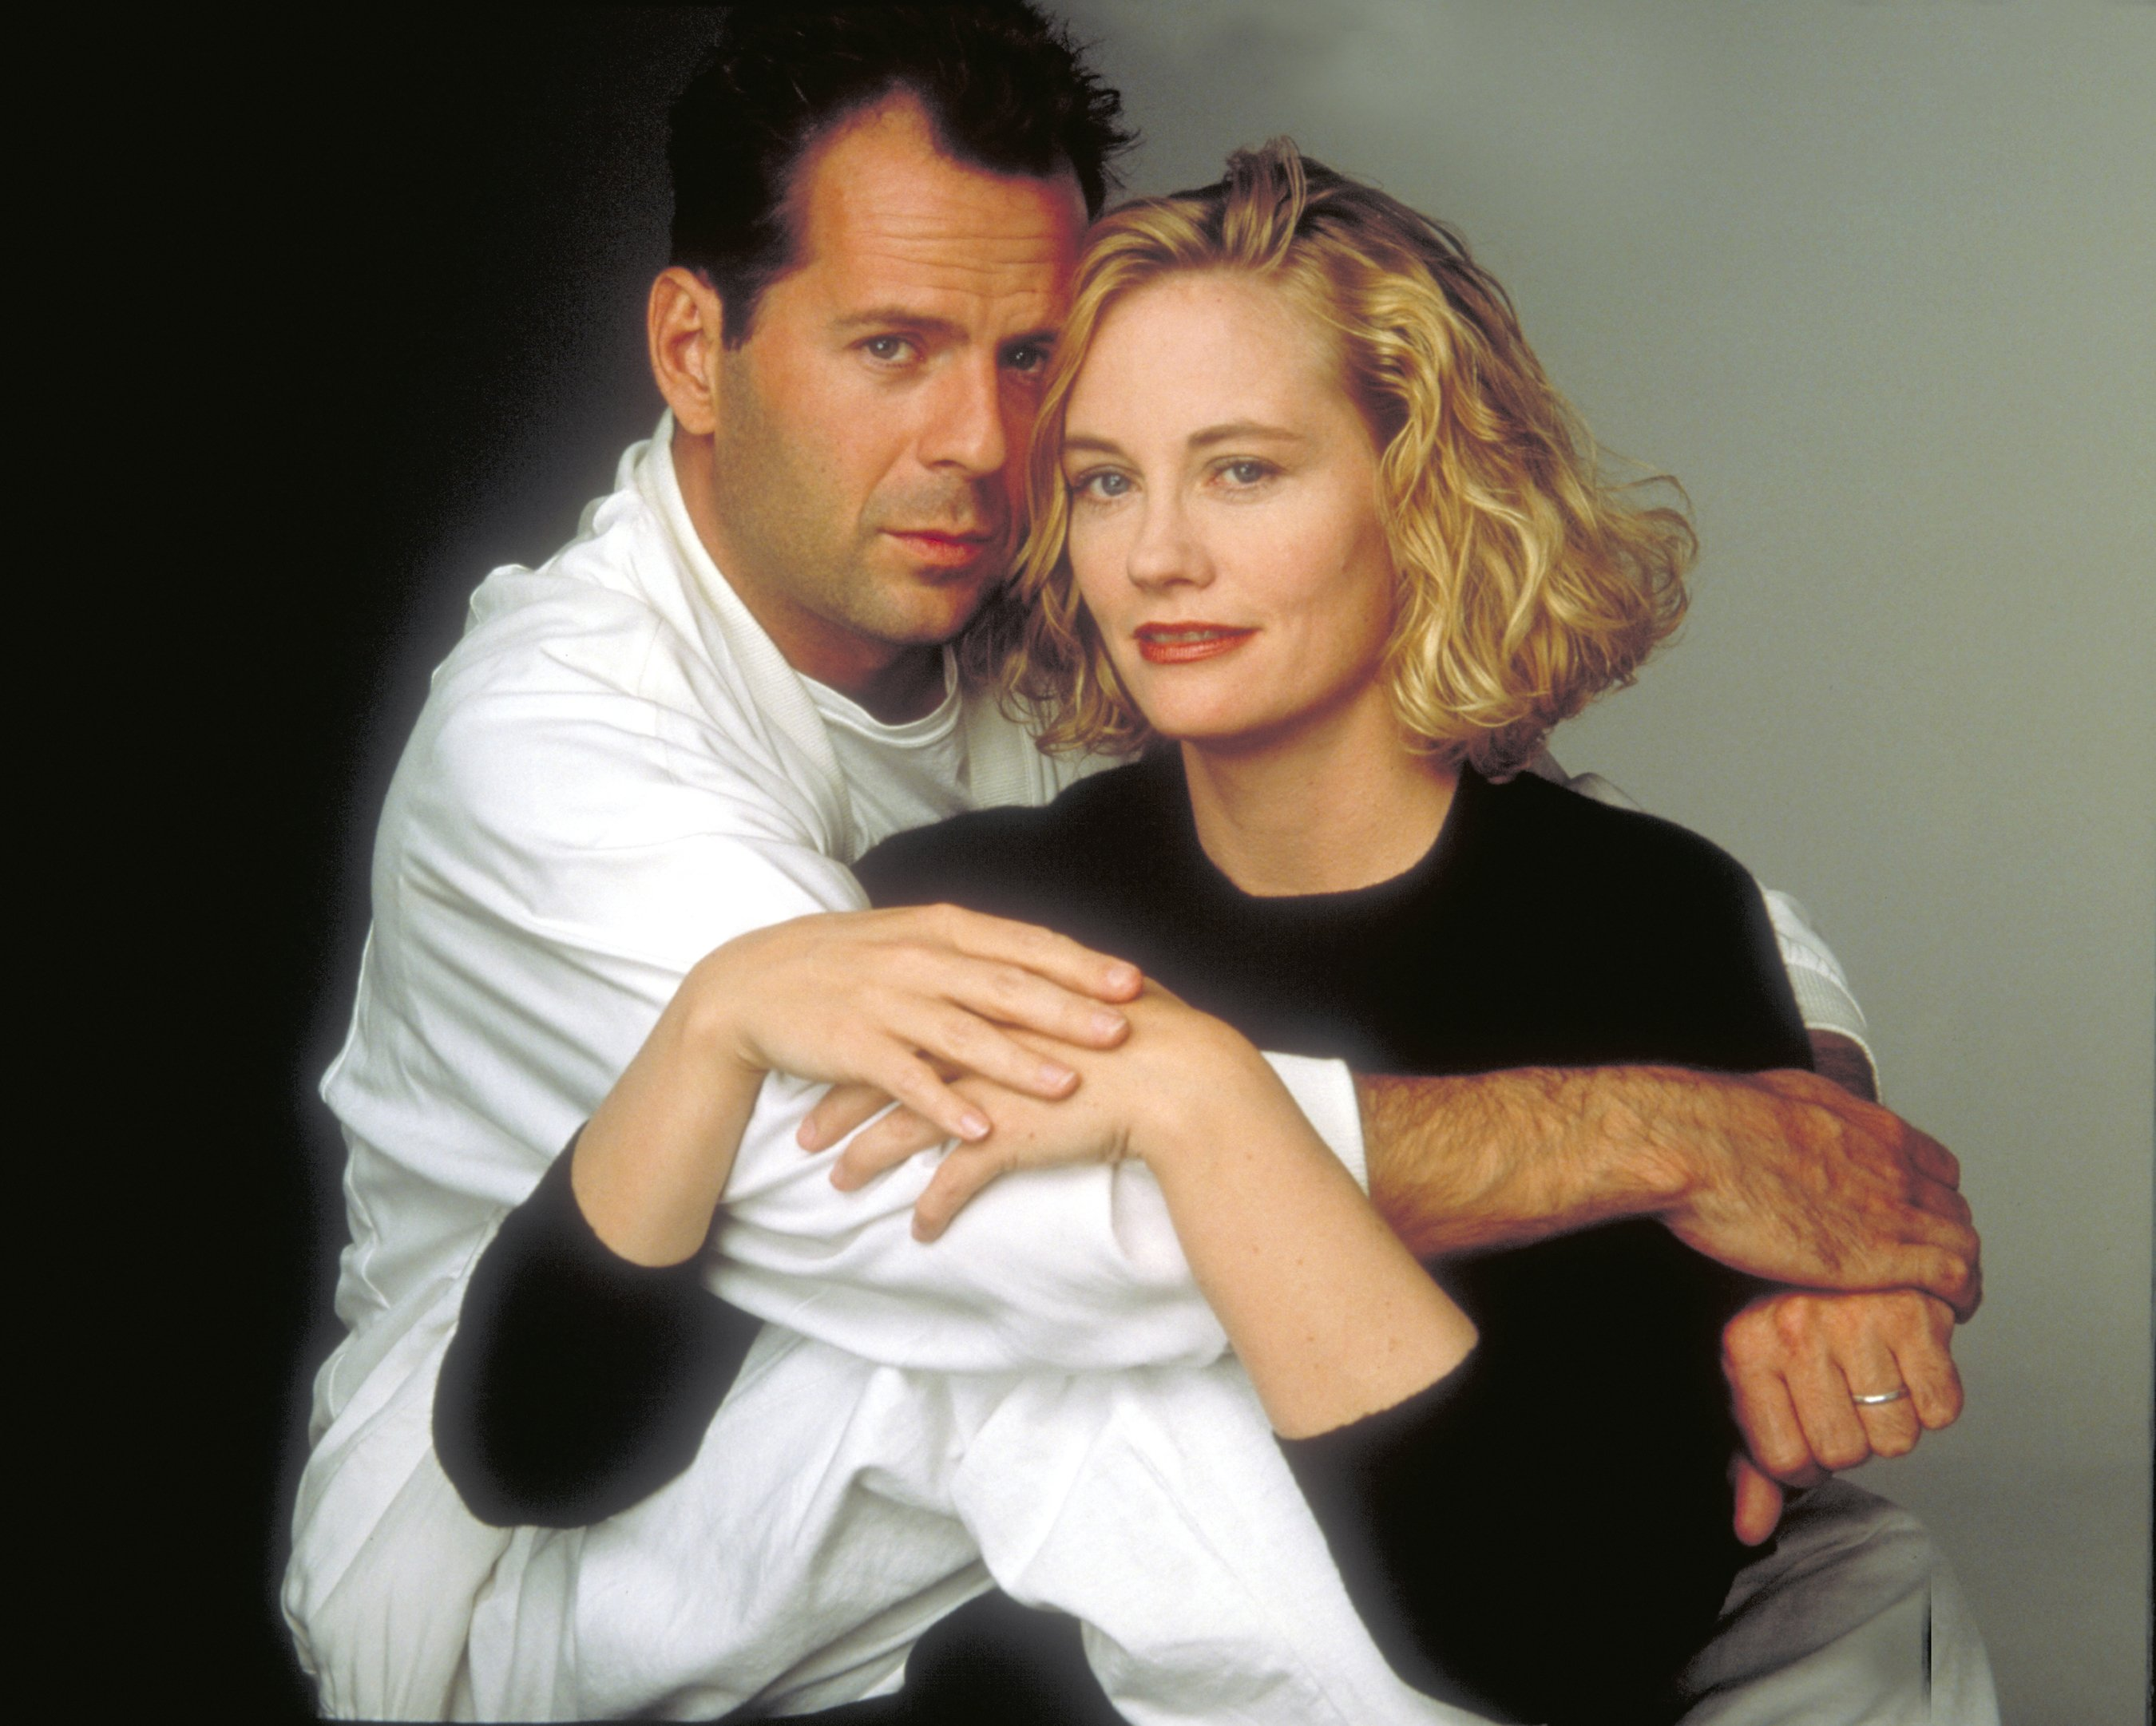 Two Characters Yelling at Each Other': Inside Bruce Willis and Cybill  Shepherd's Feud